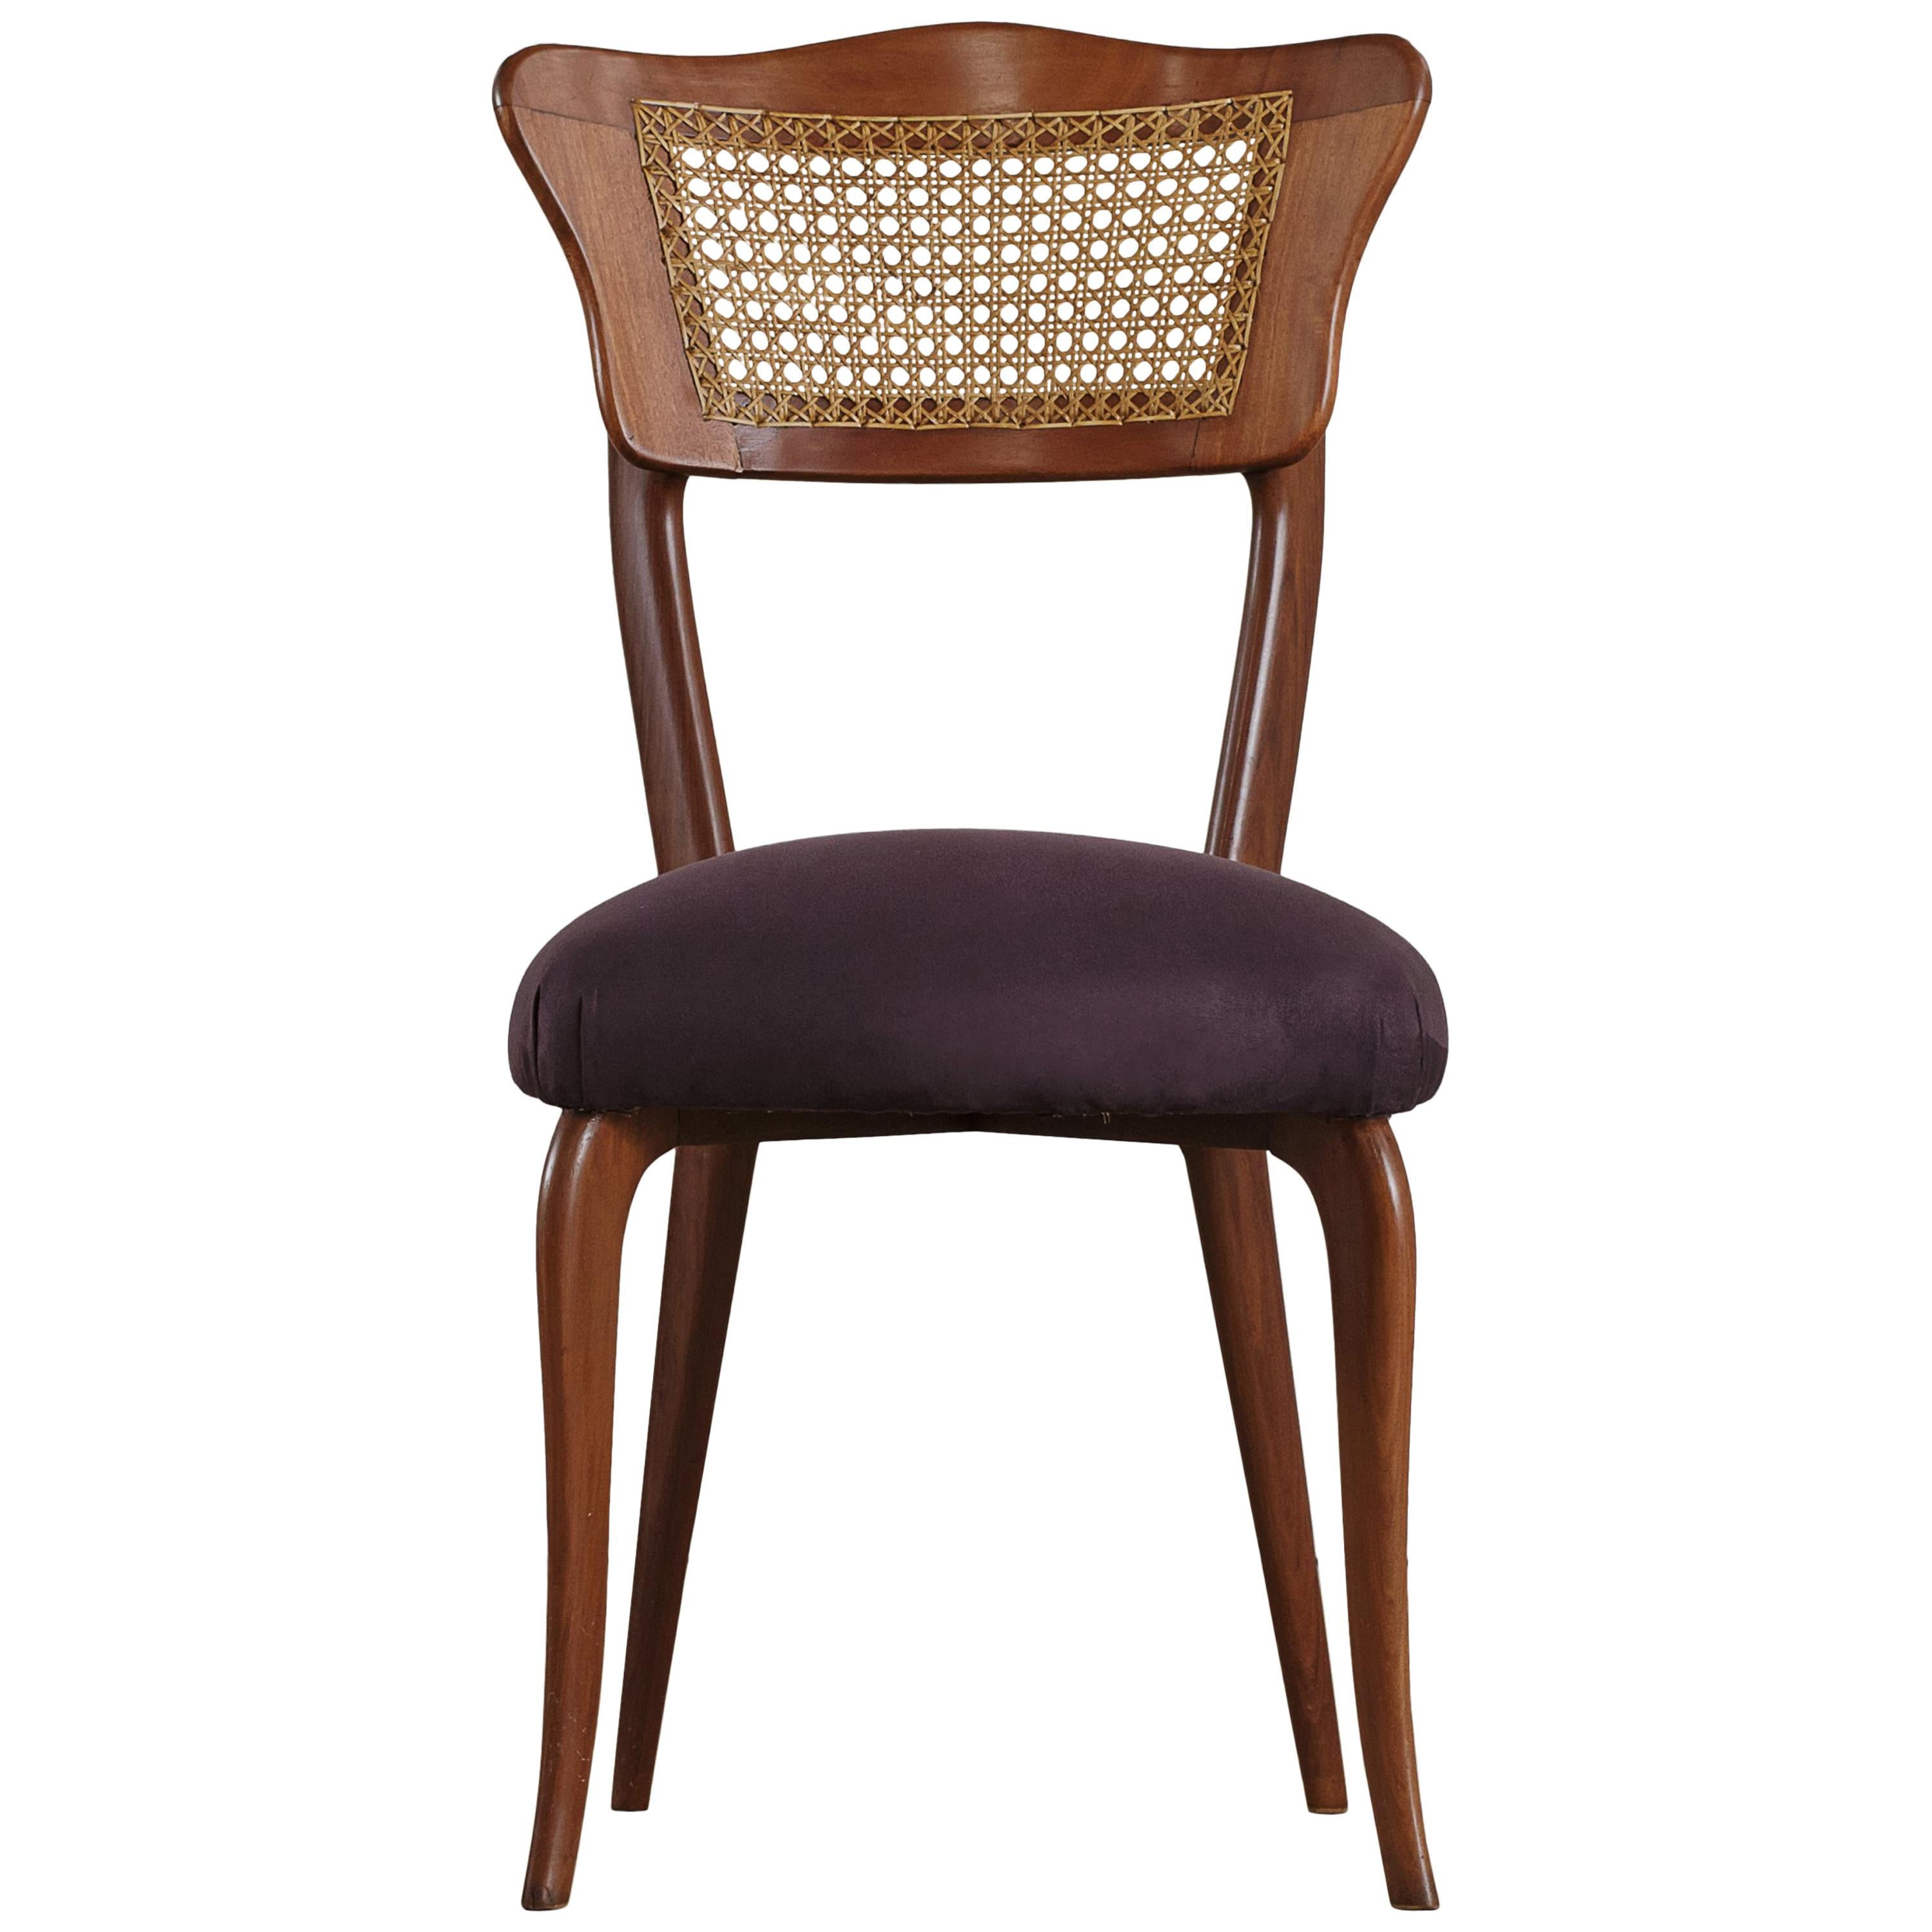 Dining Chair, Giuseppe Scapinelli, Brazilian Midcentury, 1960